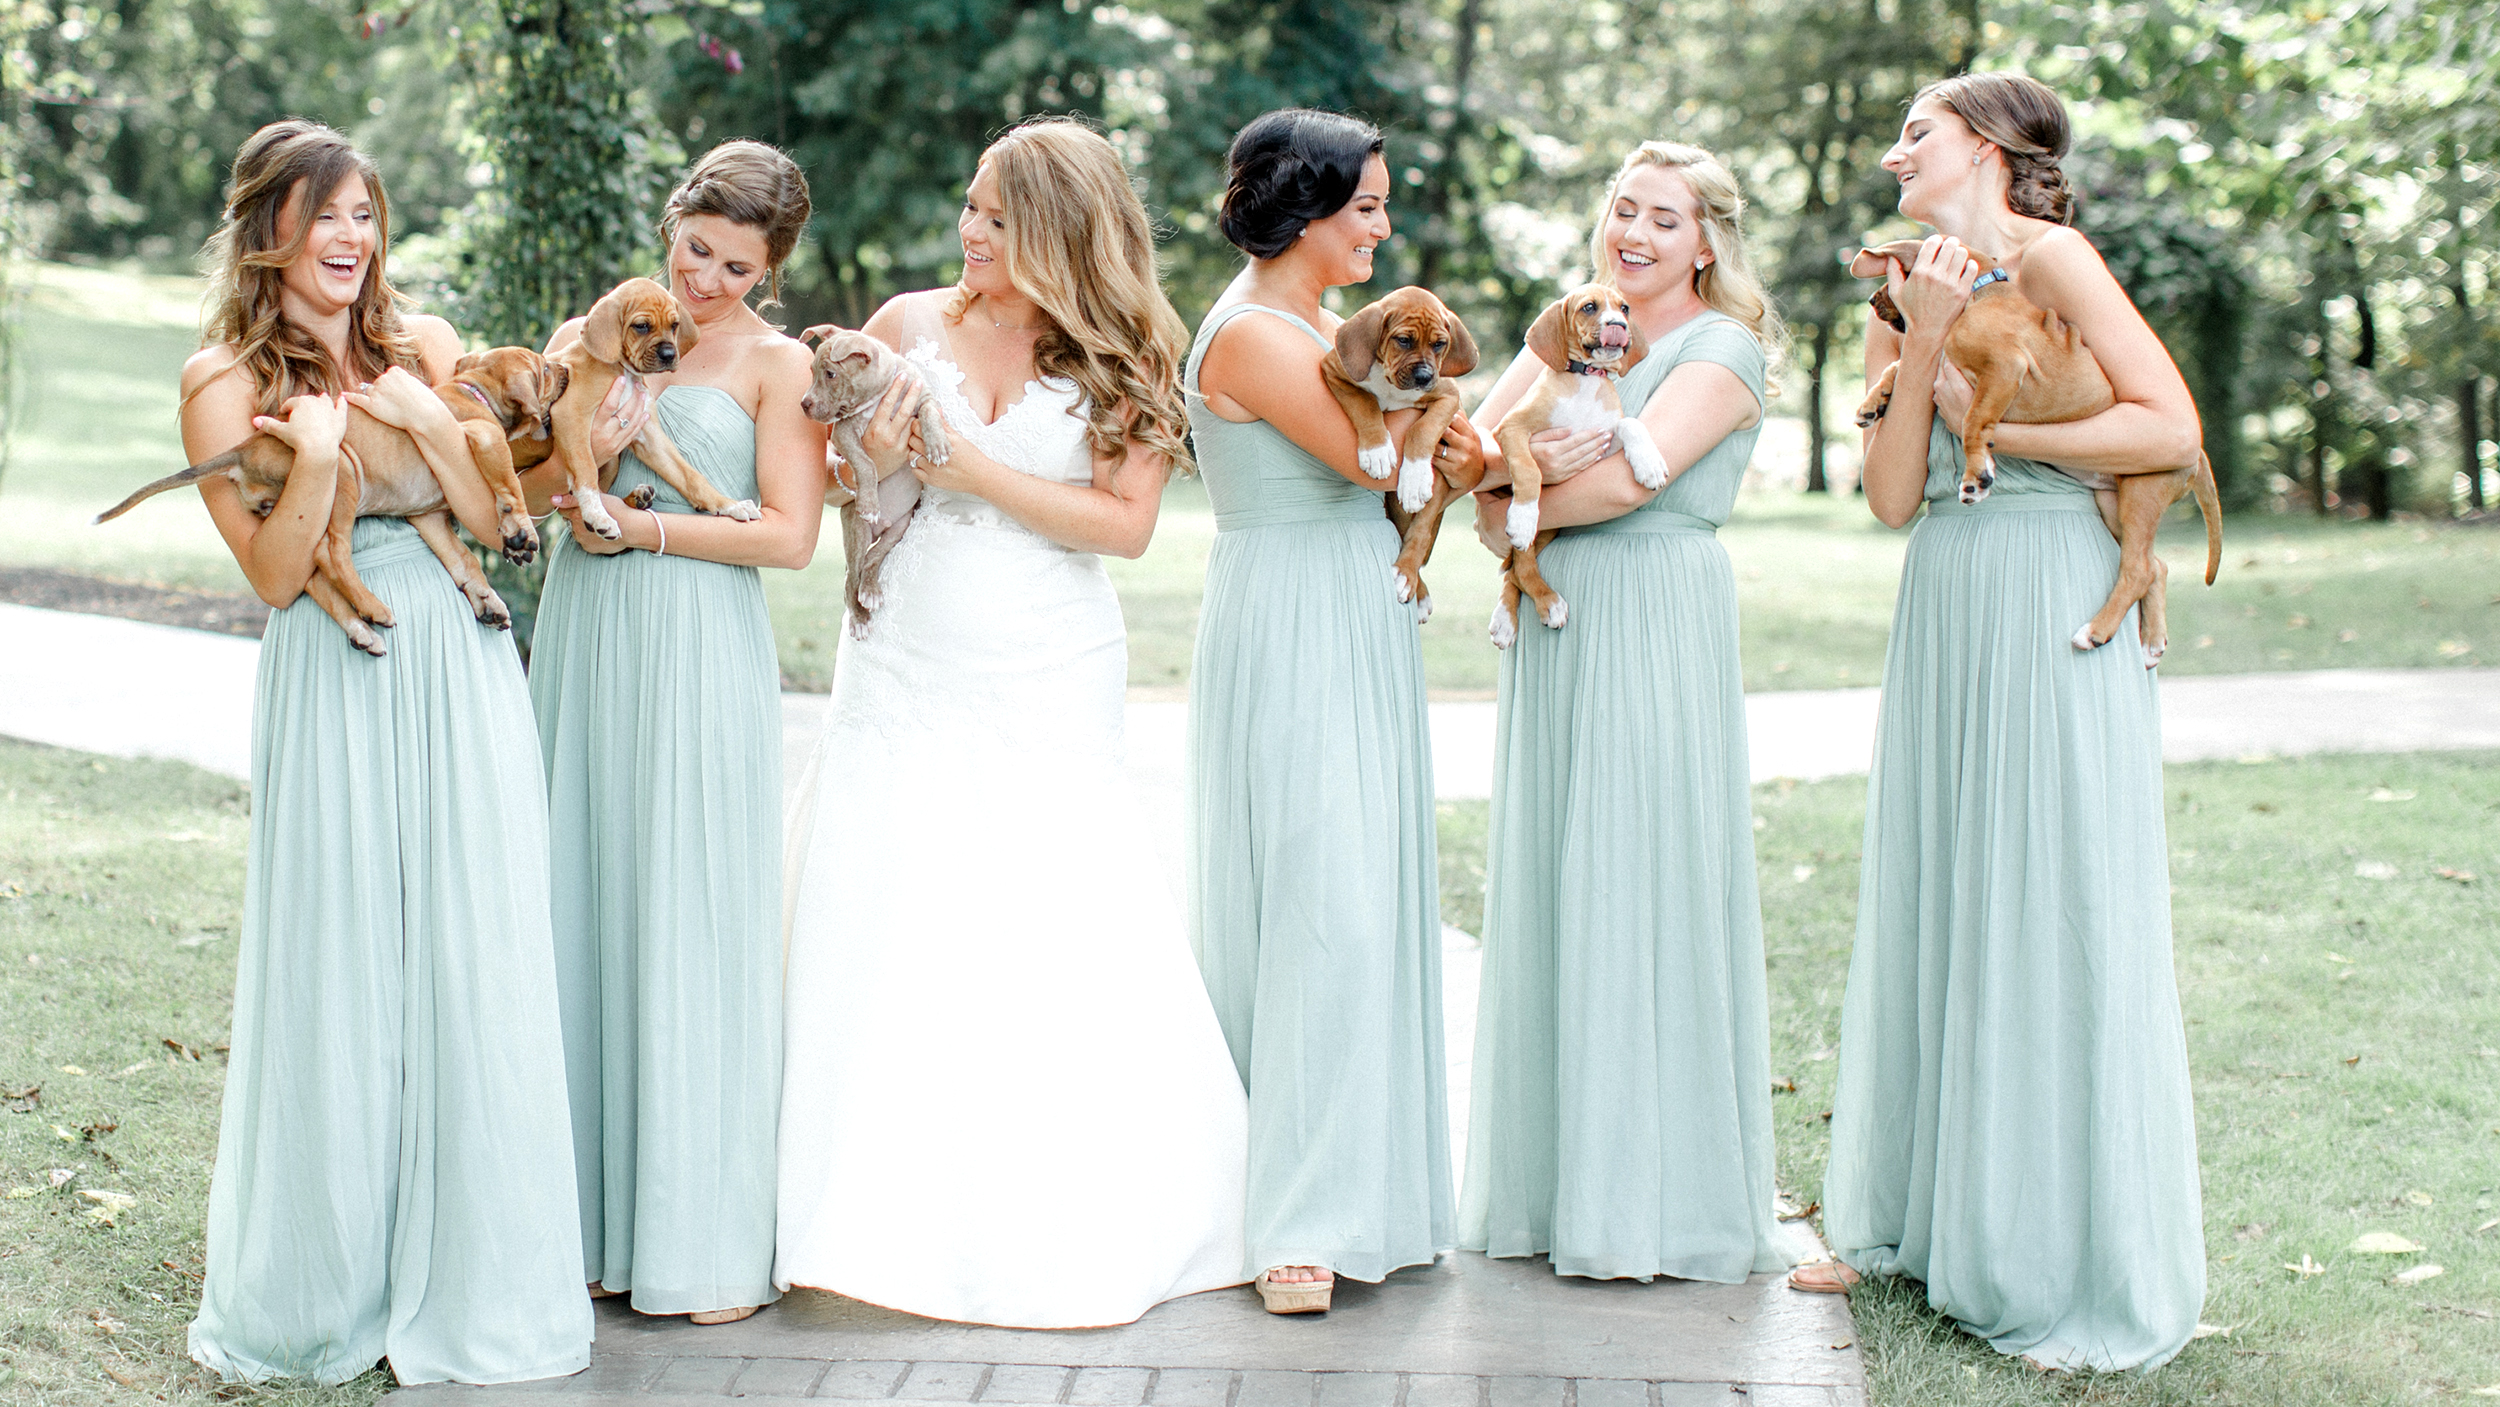 Bridesmaids Hold Puppies Instead Of Flowers In Adorable Wedding Photos